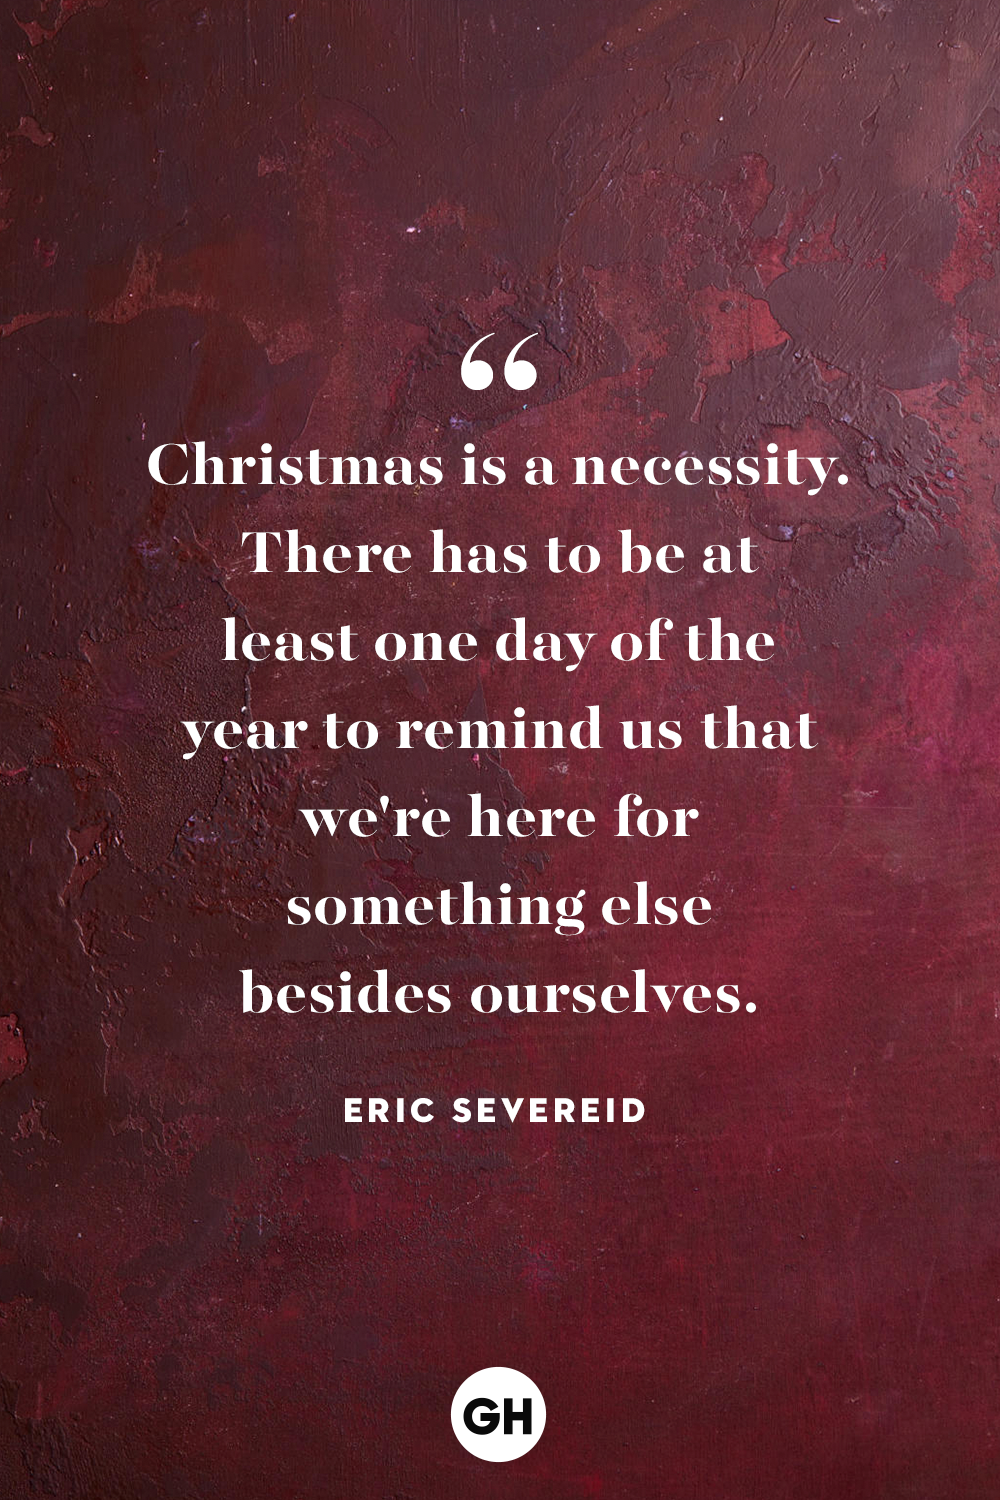 50 Best Christmas Quotes of All Time - Festive Holiday ...